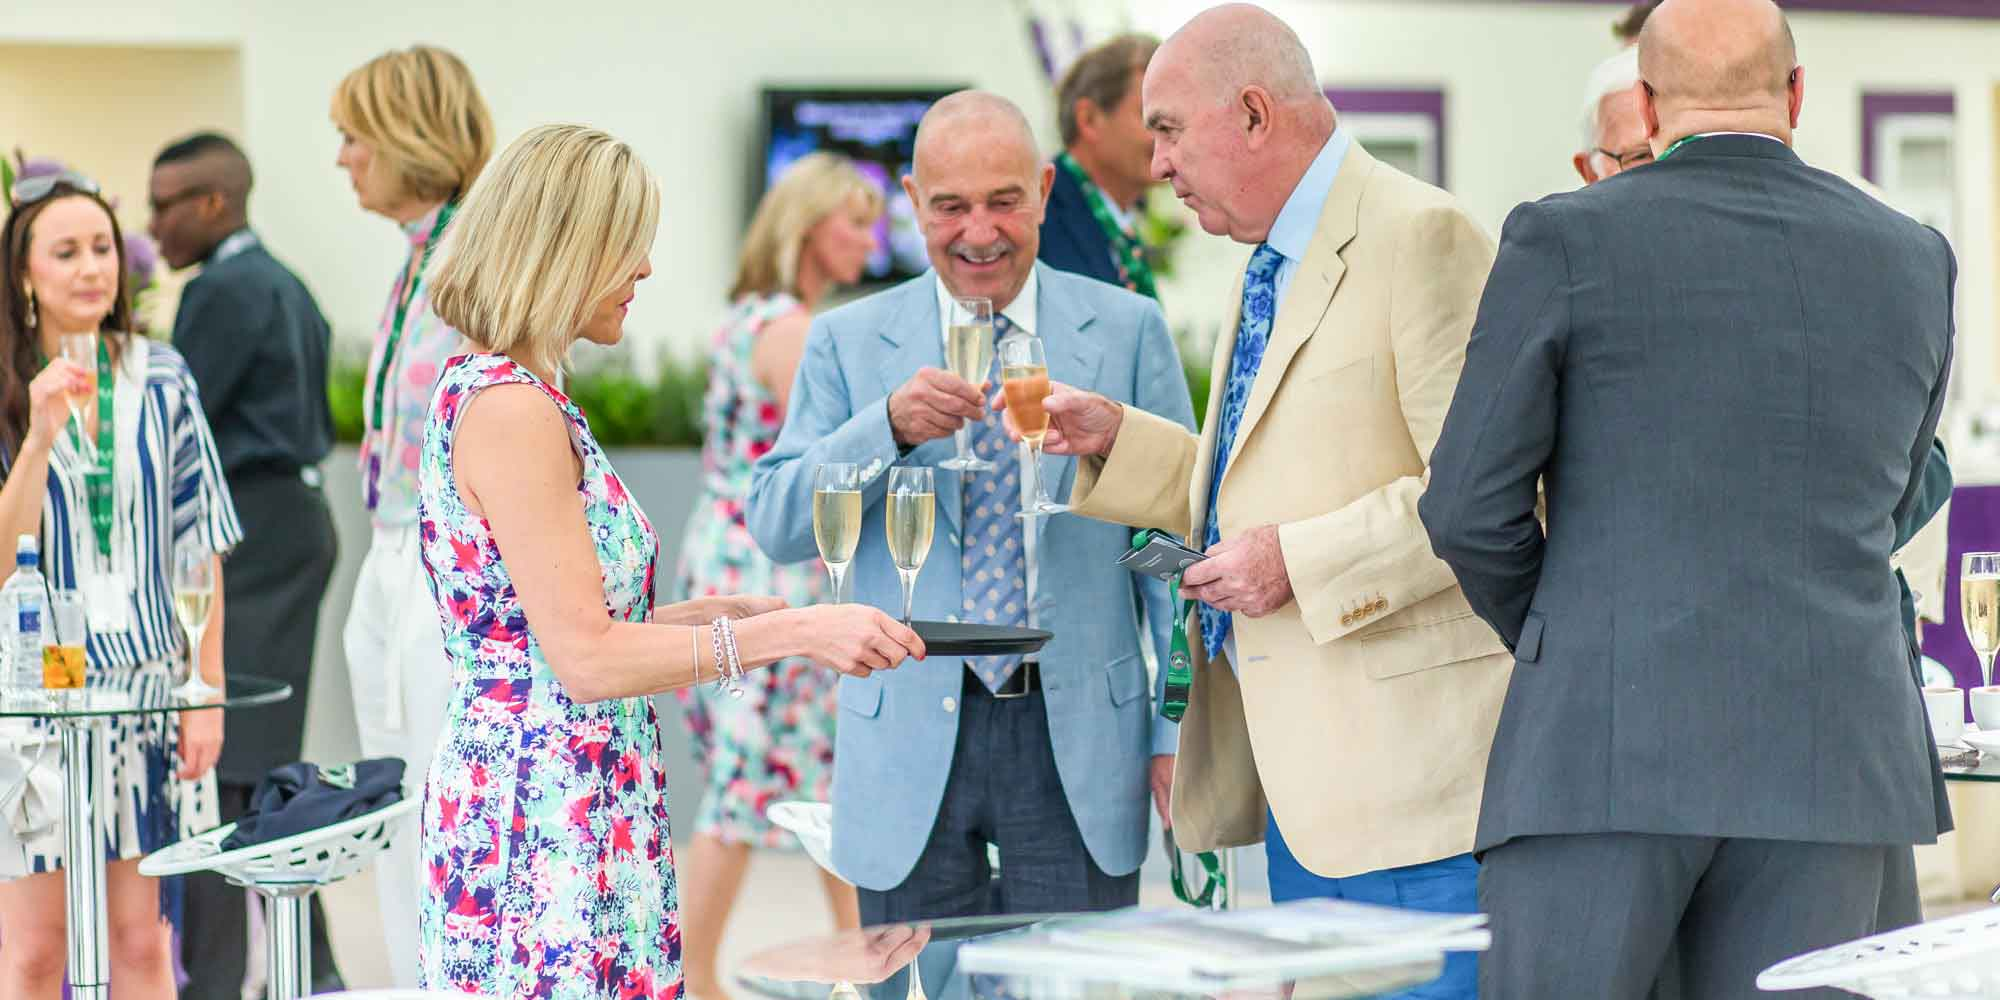 Why Choose Corporate Hospitality